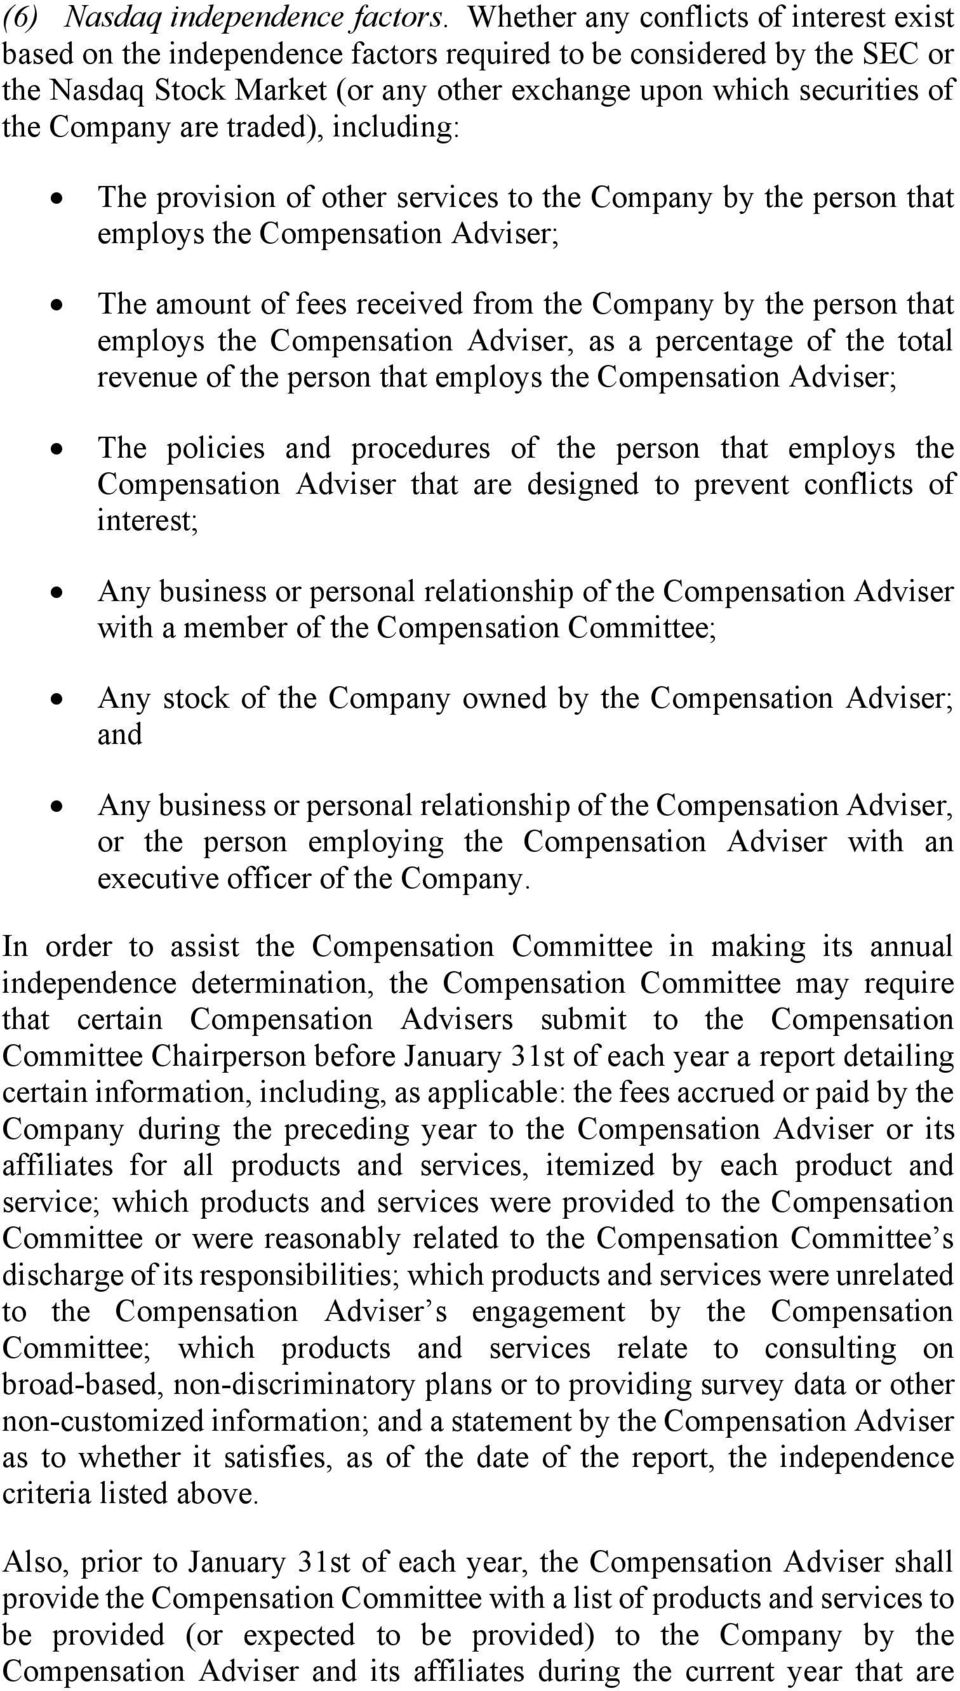 are traded), including: The provision of other services to the Company by the person that employs the Compensation Adviser; The amount of fees received from the Company by the person that employs the